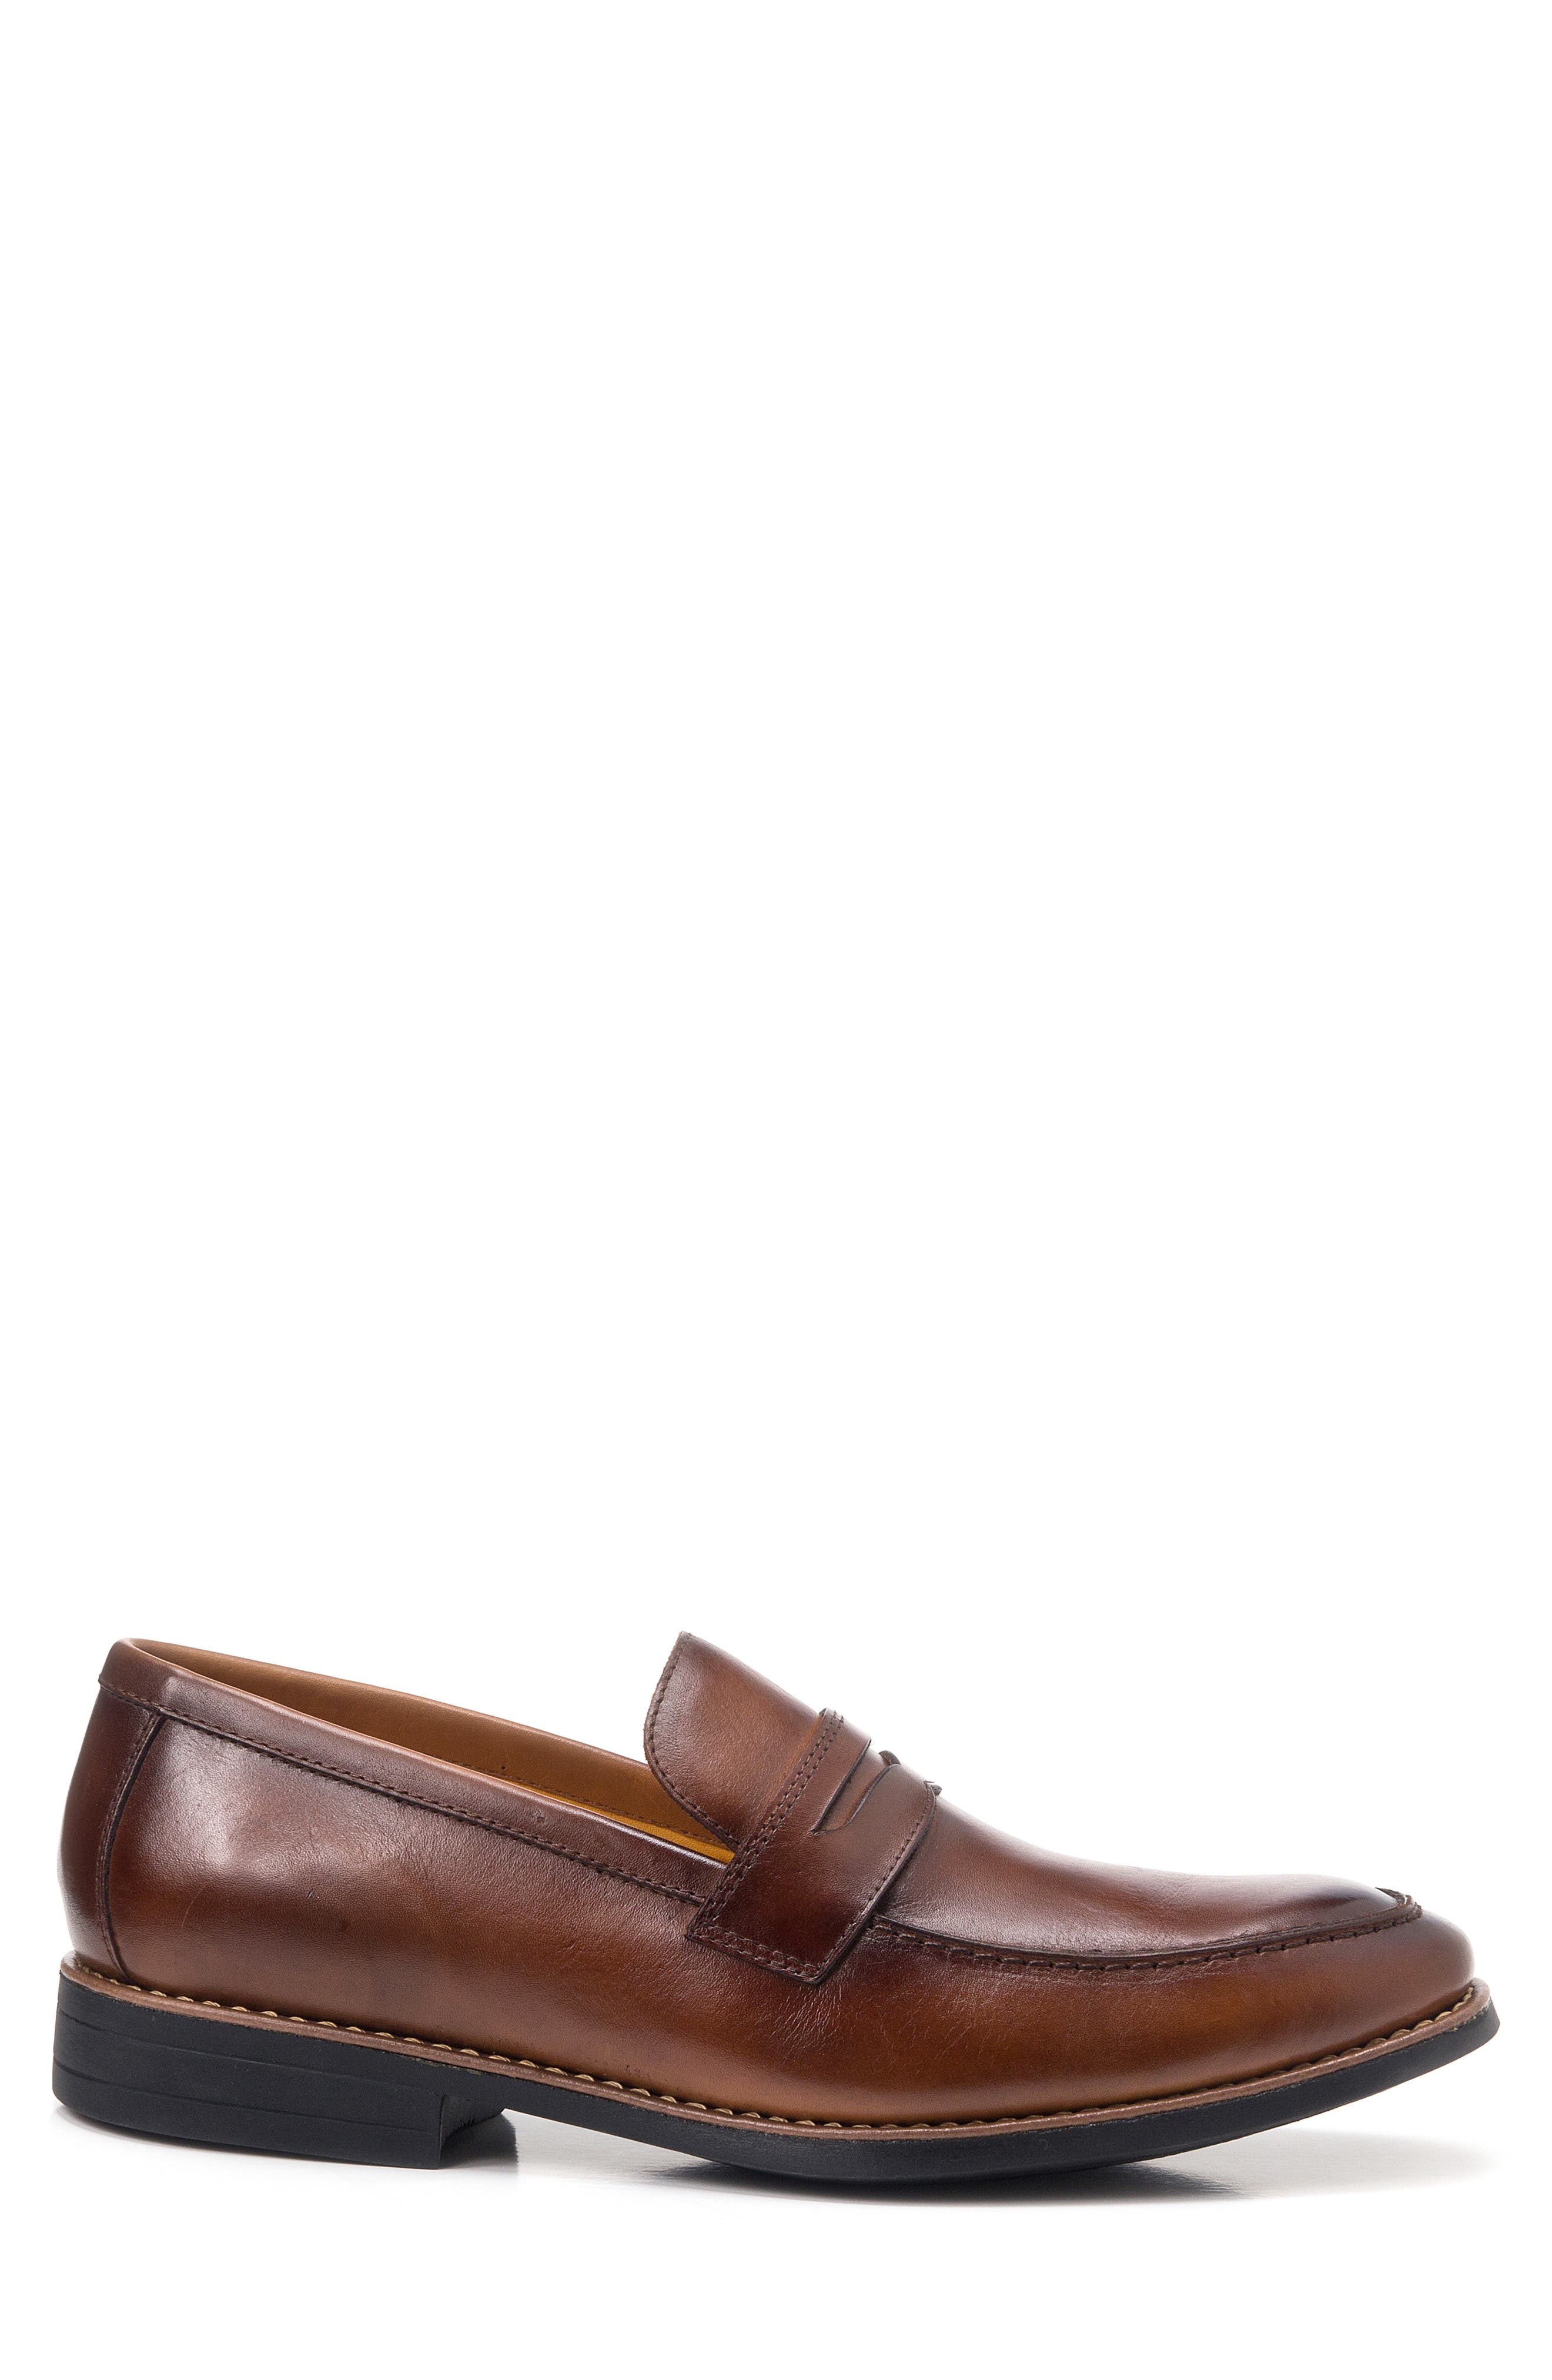 Mundo Penny Loafer,                             Alternate thumbnail 3, color,                             BROWN LEATHER